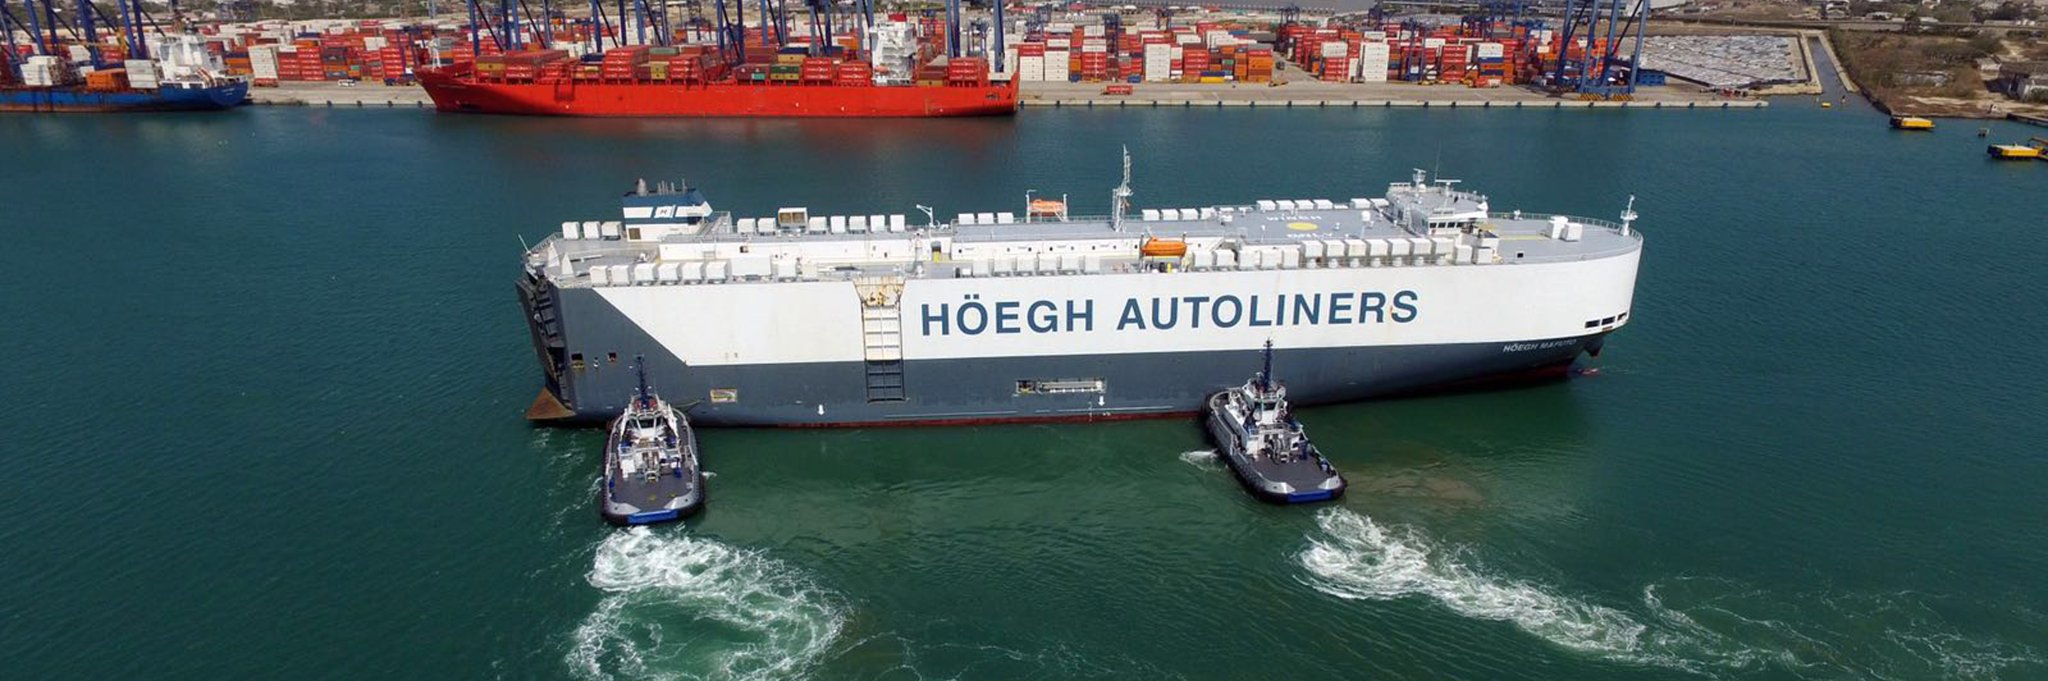 News and Press Releases - Höegh Autoliners